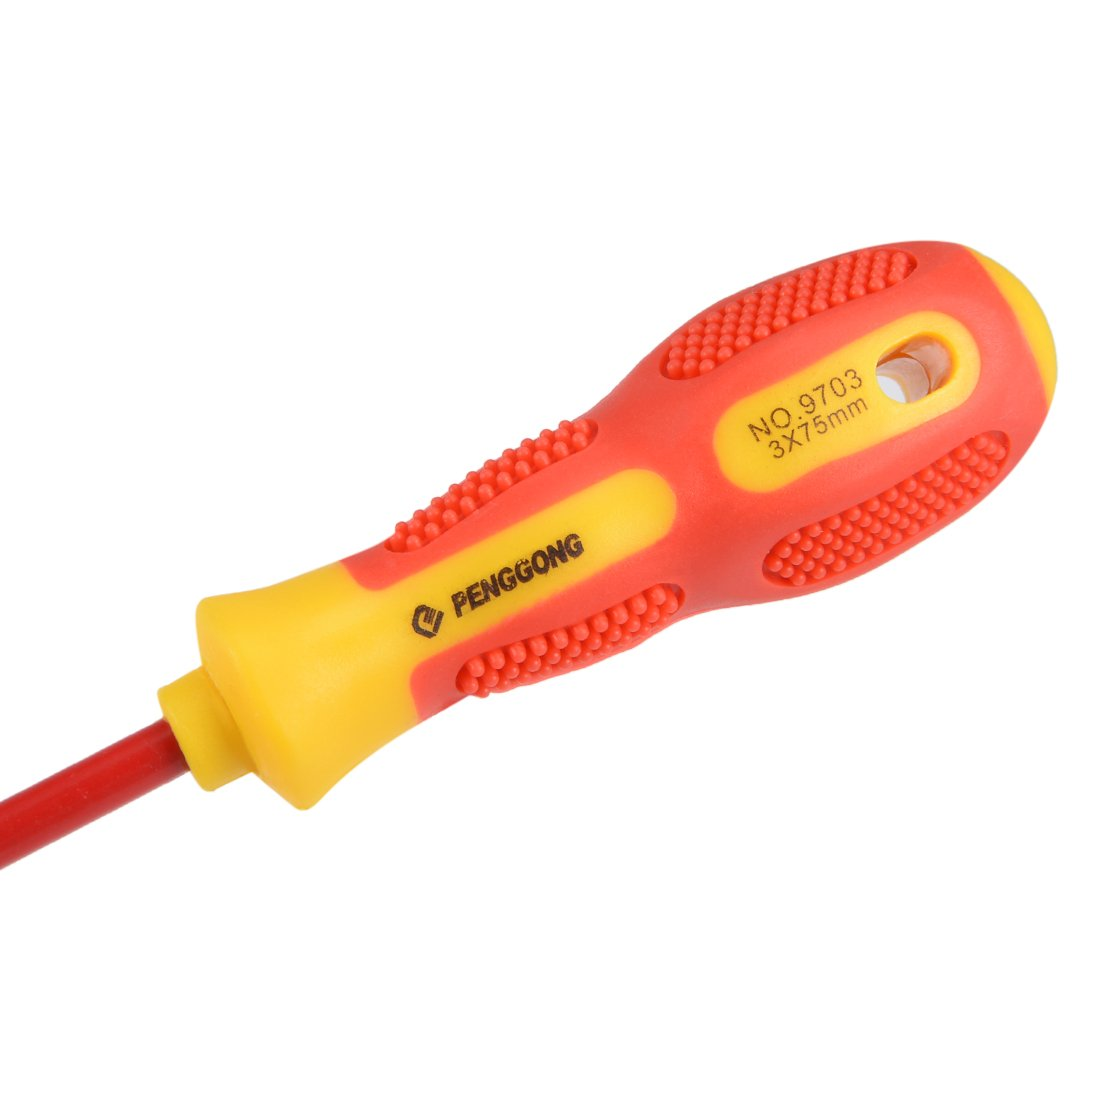 uxcell/® 1000v Slotted Insulated Magnetic Tip Electrical Screwdriver 3mm x 75mm